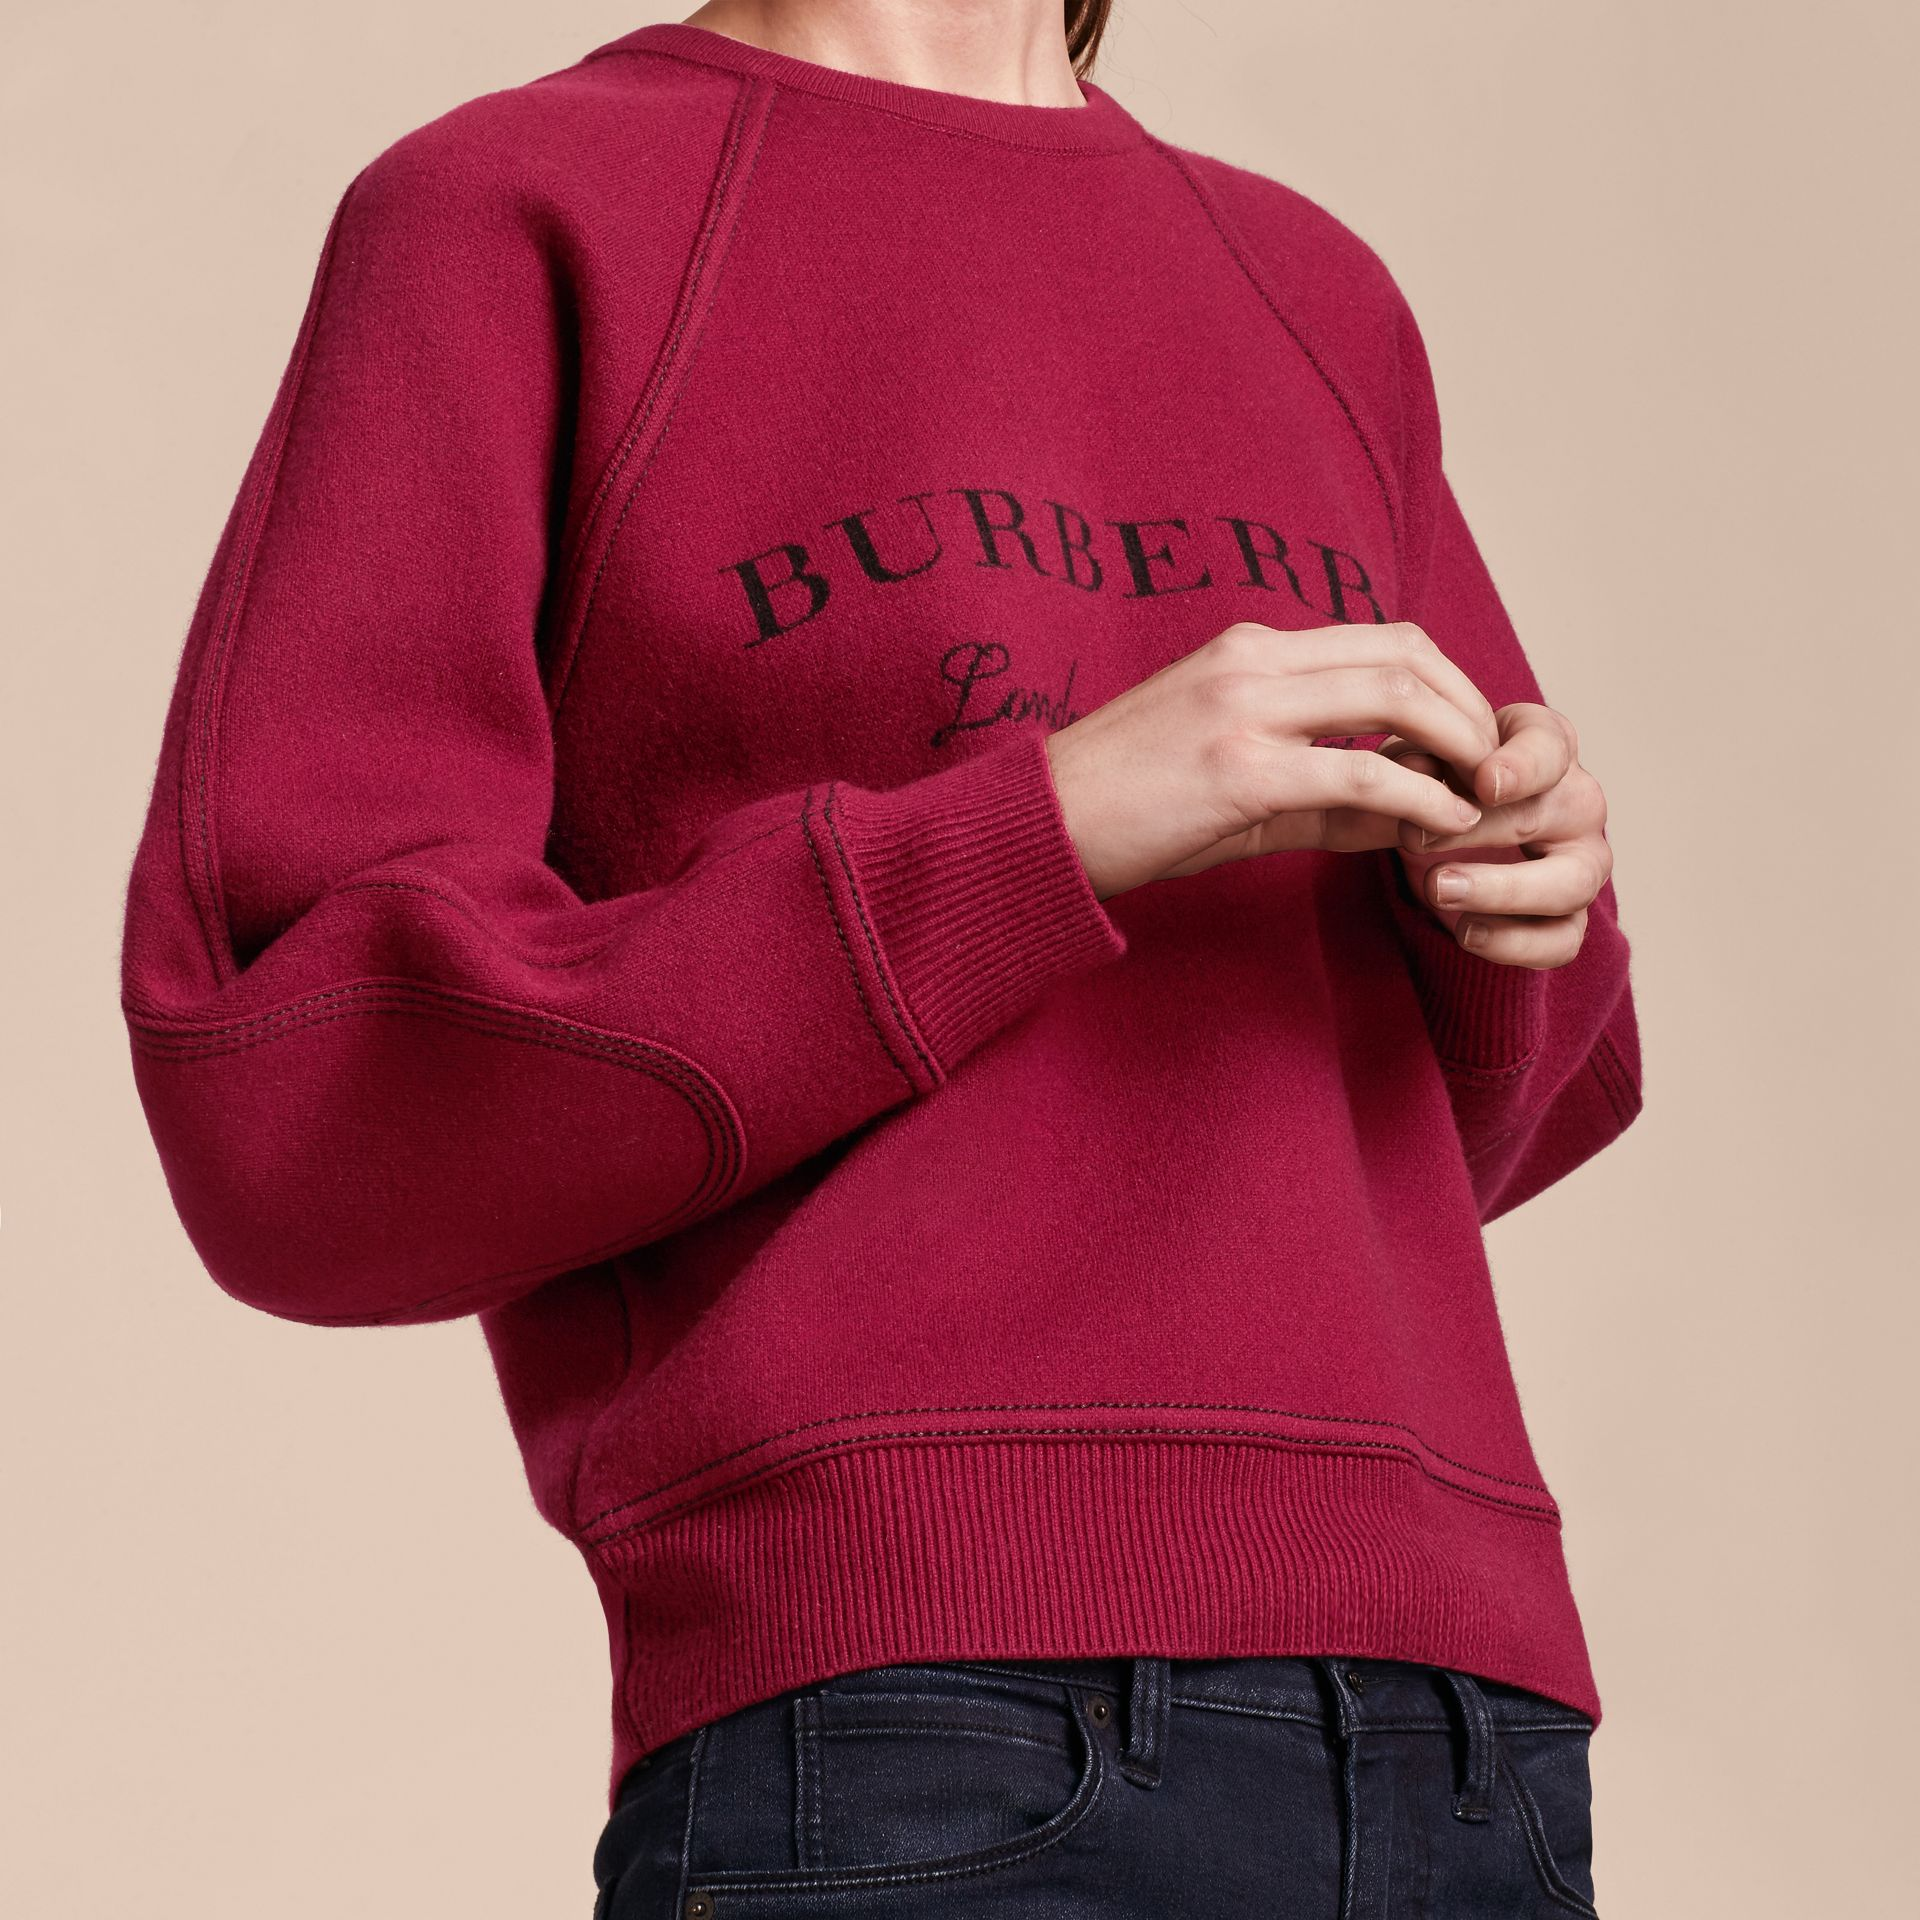 Topstitch Detail Wool Cashmere Blend Sweater in Burgundy - Women | Burberry Singapore - gallery image 5